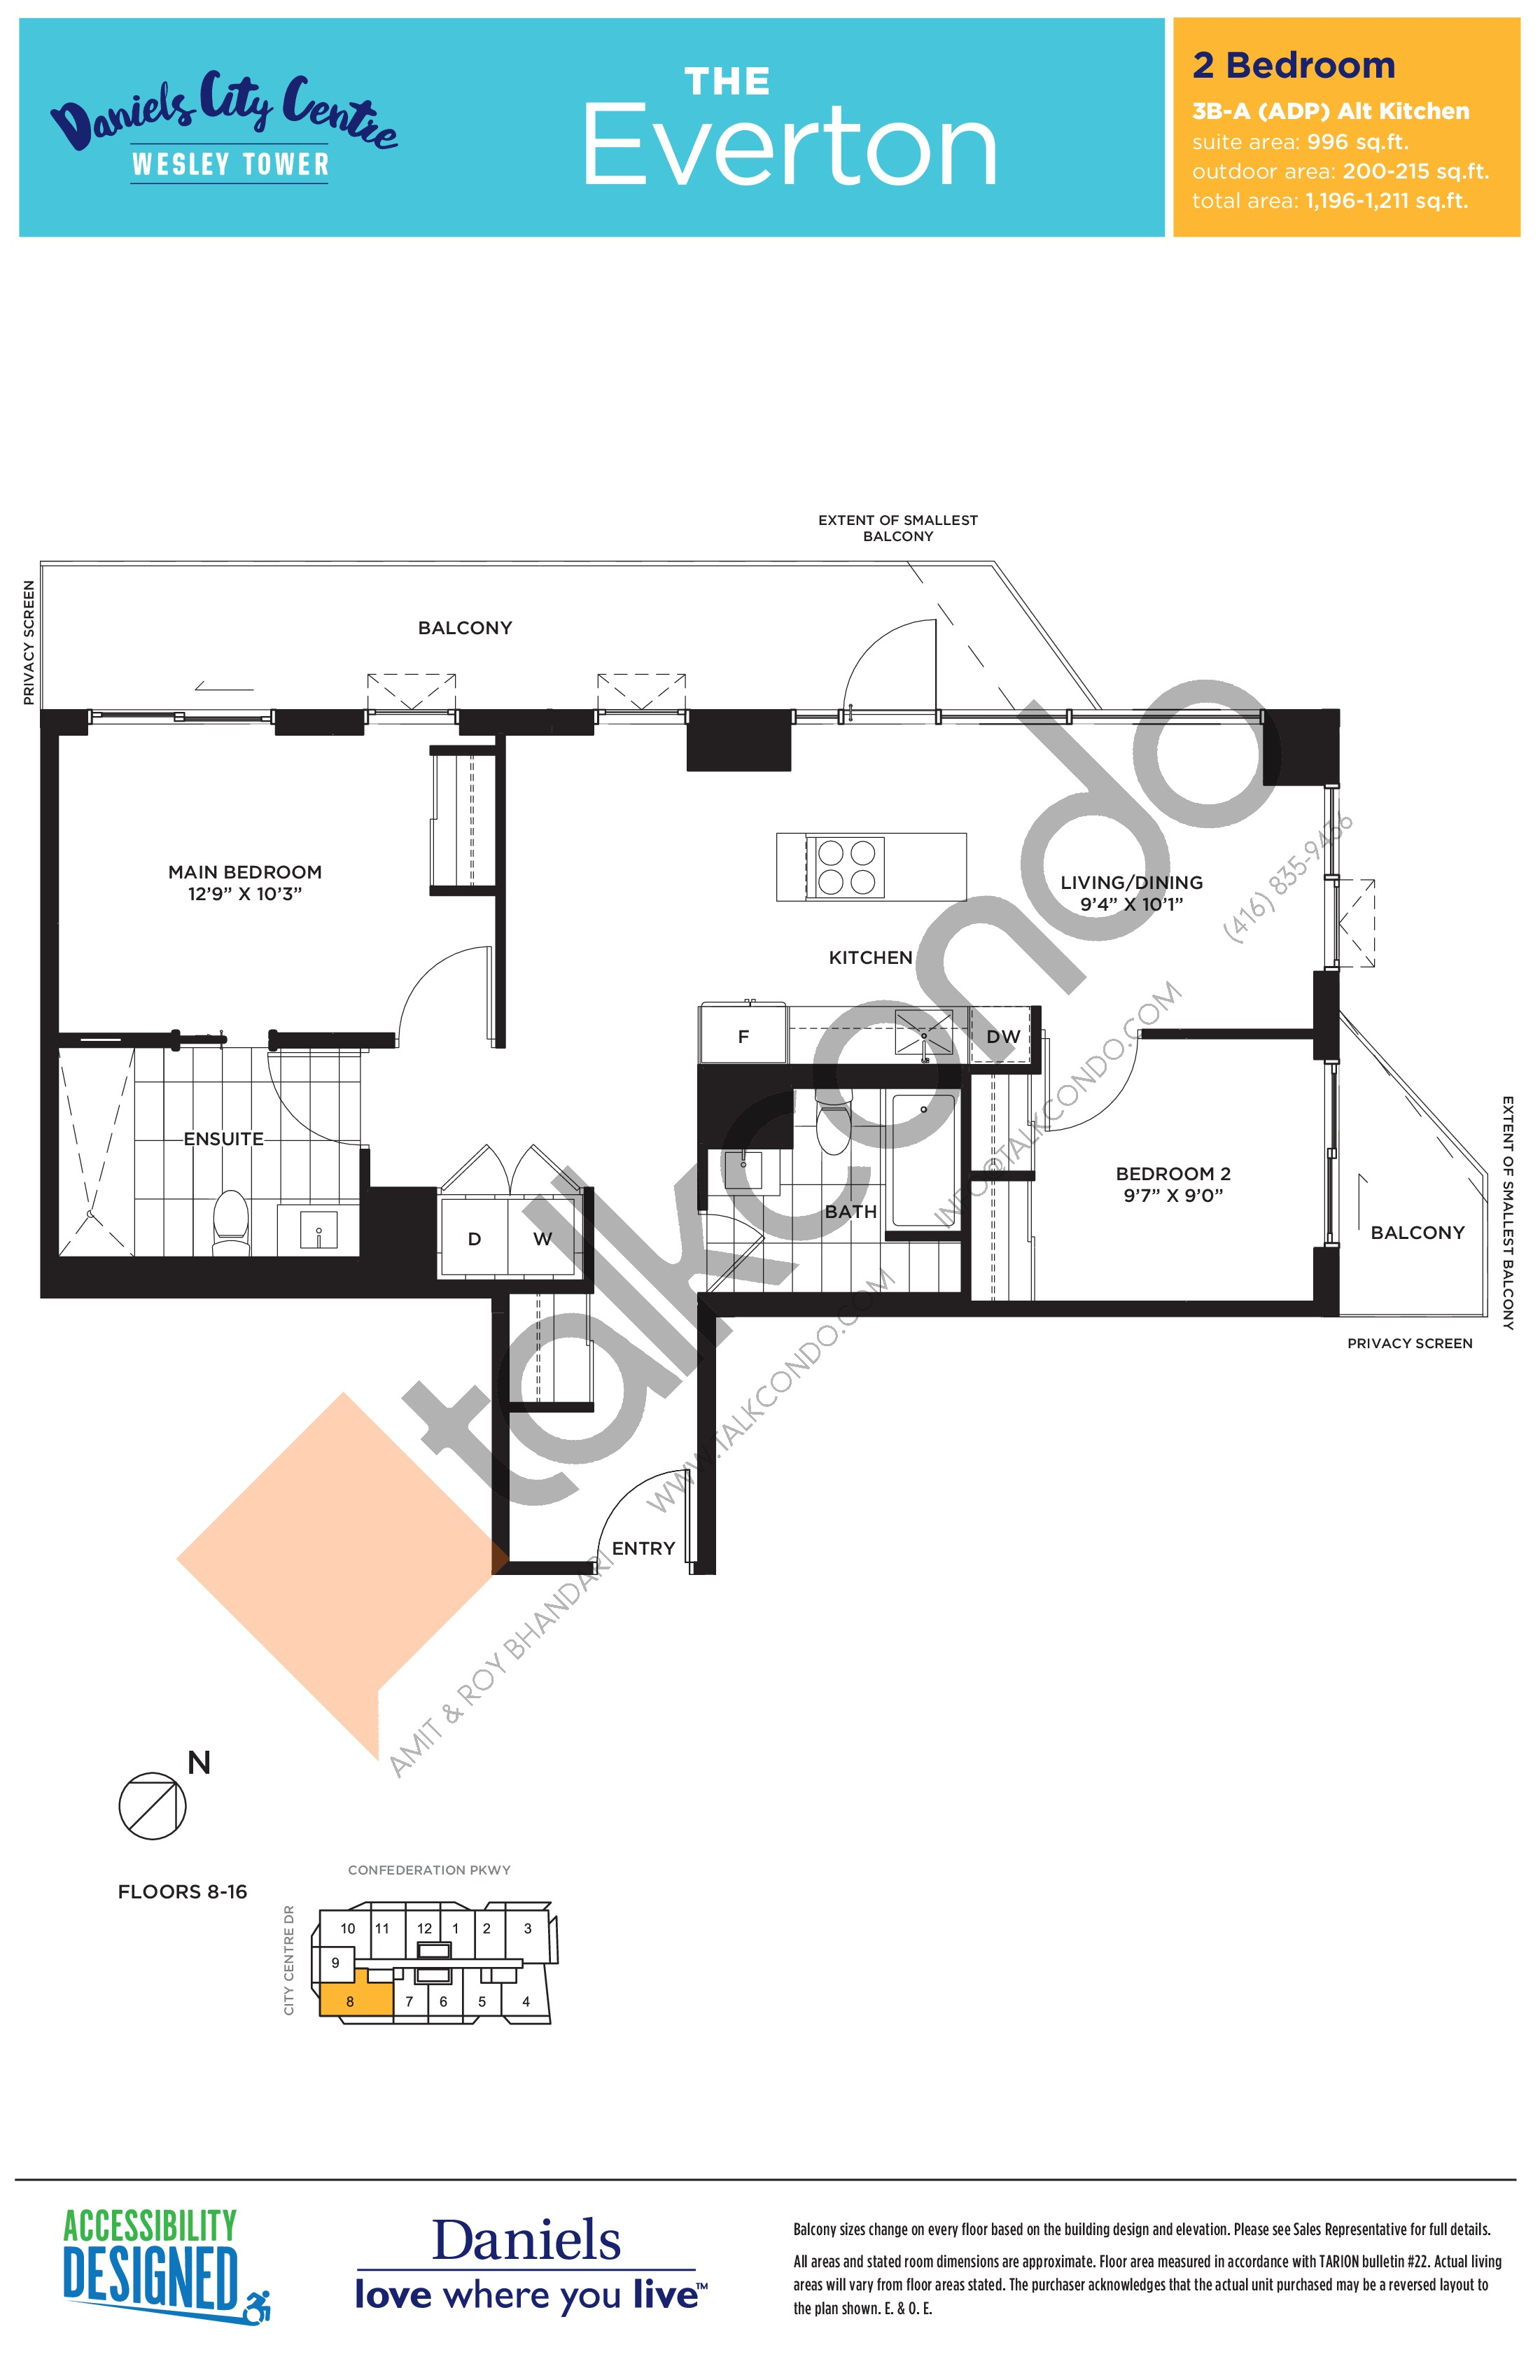 The Everton Floor Plan at The Wesley Tower at Daniels City Centre Condos - 996 sq.ft